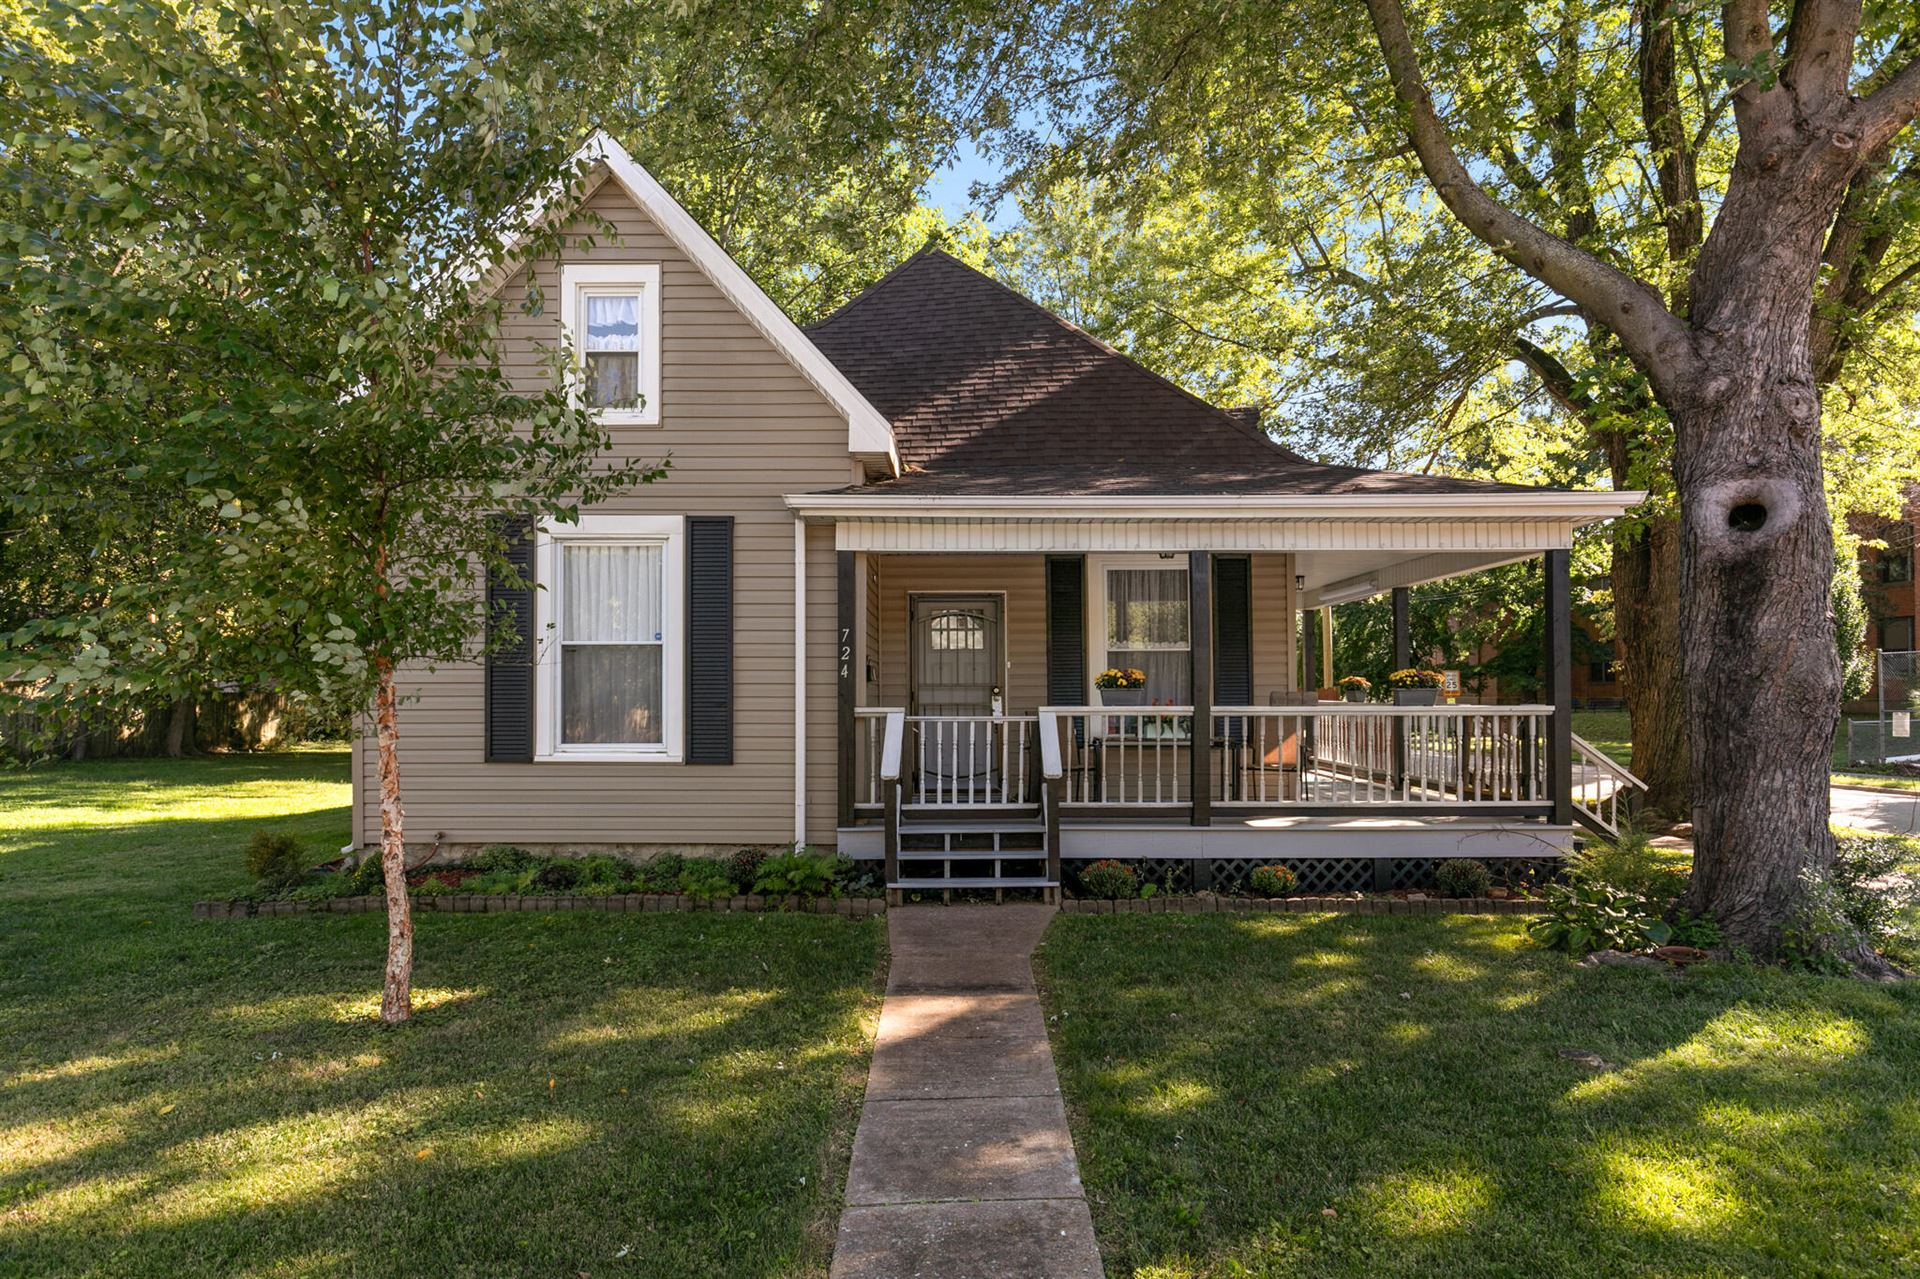 Photo of 724 West Division Street, Springfield, MO 65803 (MLS # 60203773)